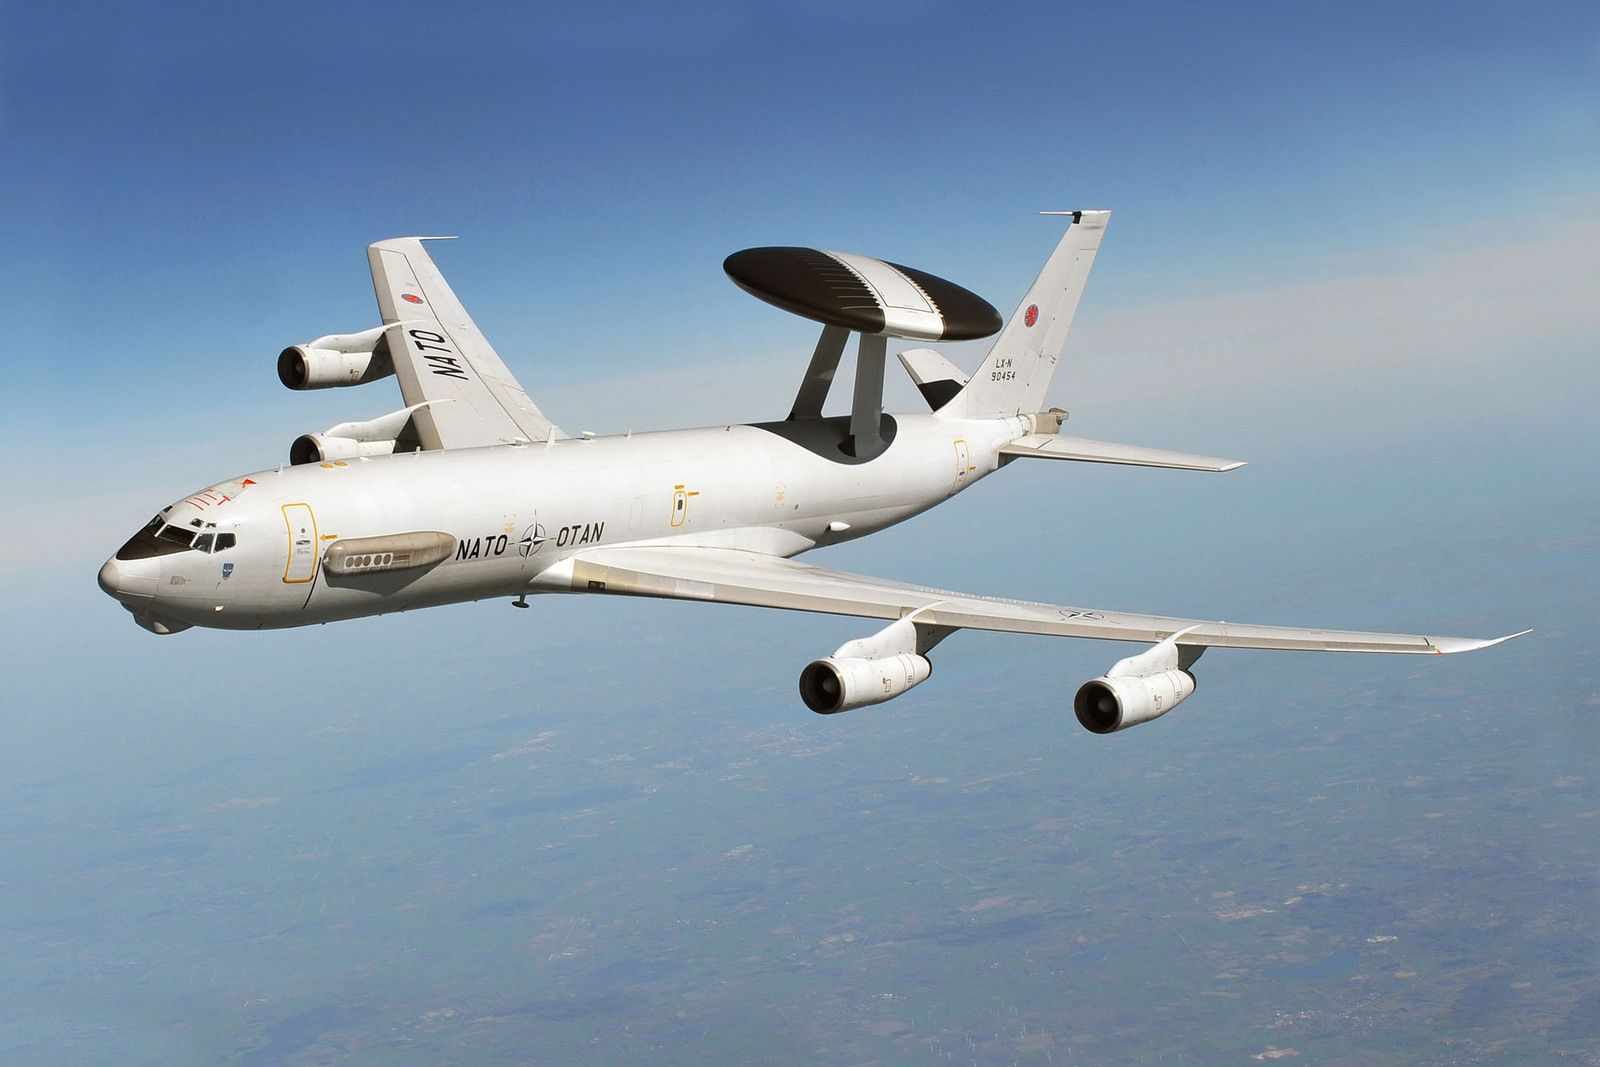 NATO sending spy planes near Russia practically every day, Russians complain